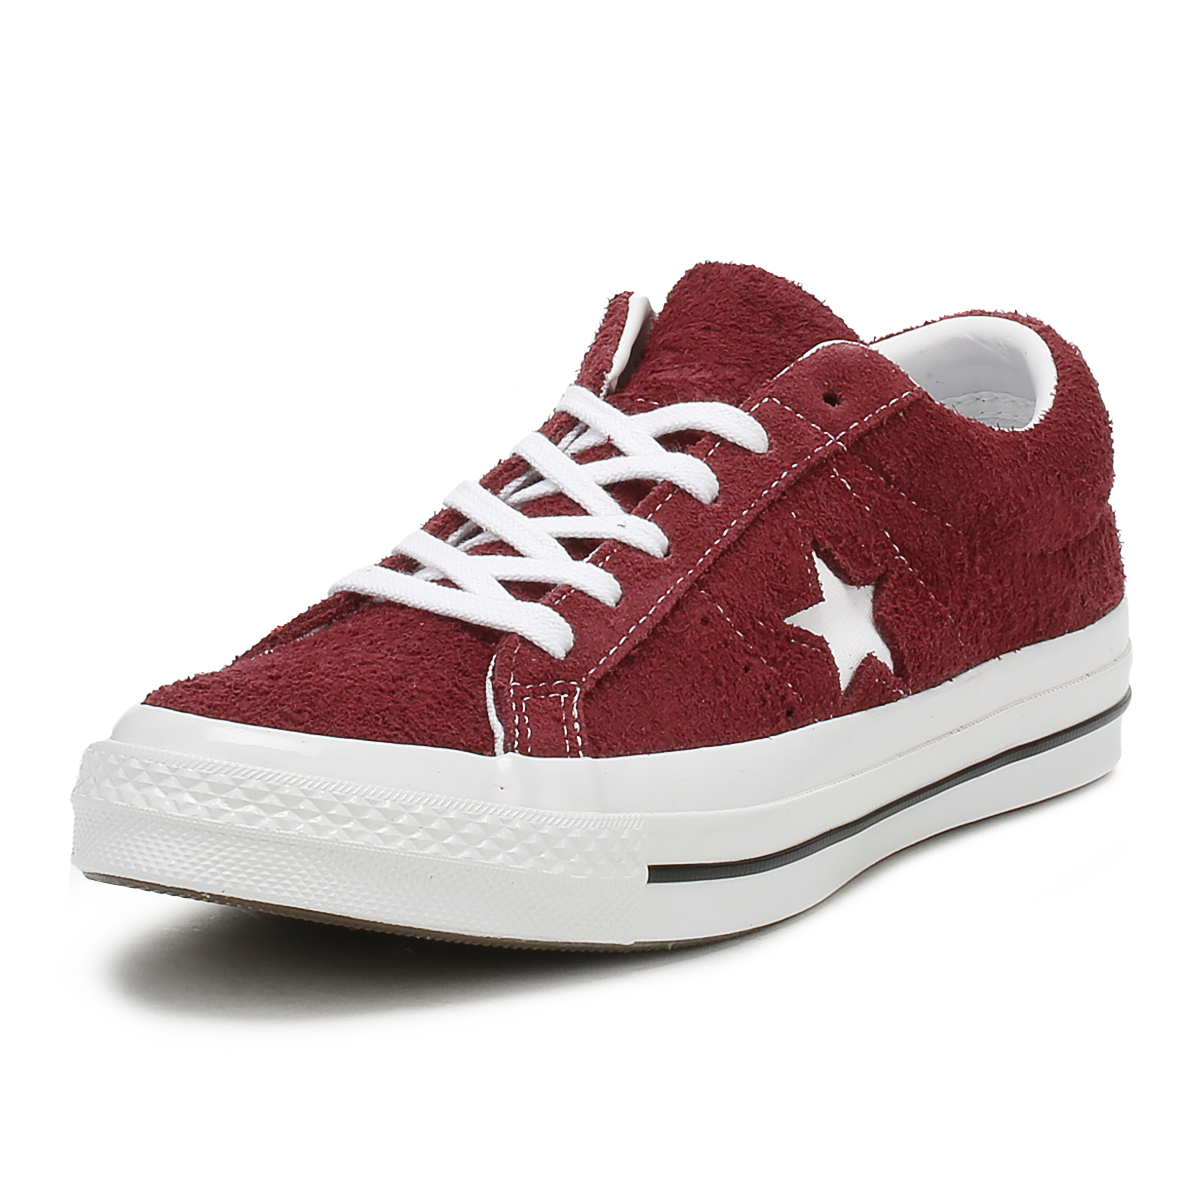 Converse One Star Ox Uomo Red White Scarpe da Ginnastica 11 UK